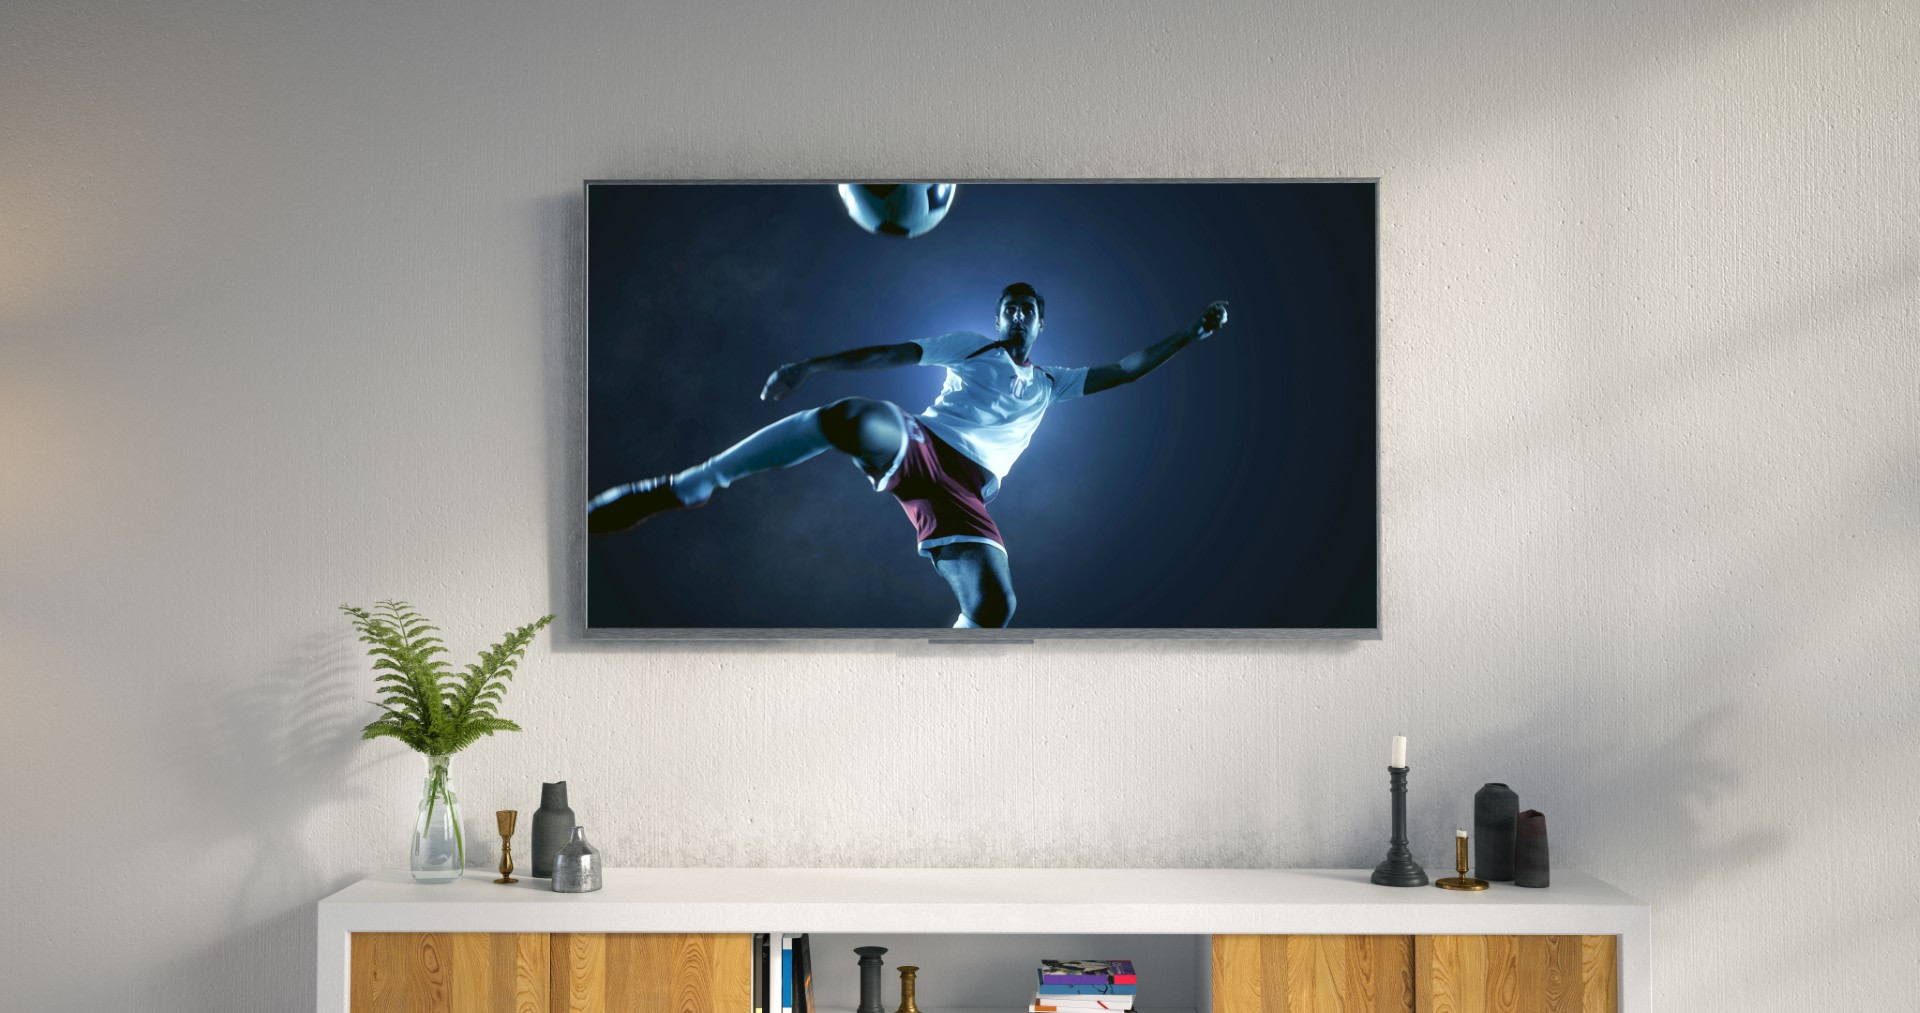 An image related to Cheap WebOS Smart TVs for 2019